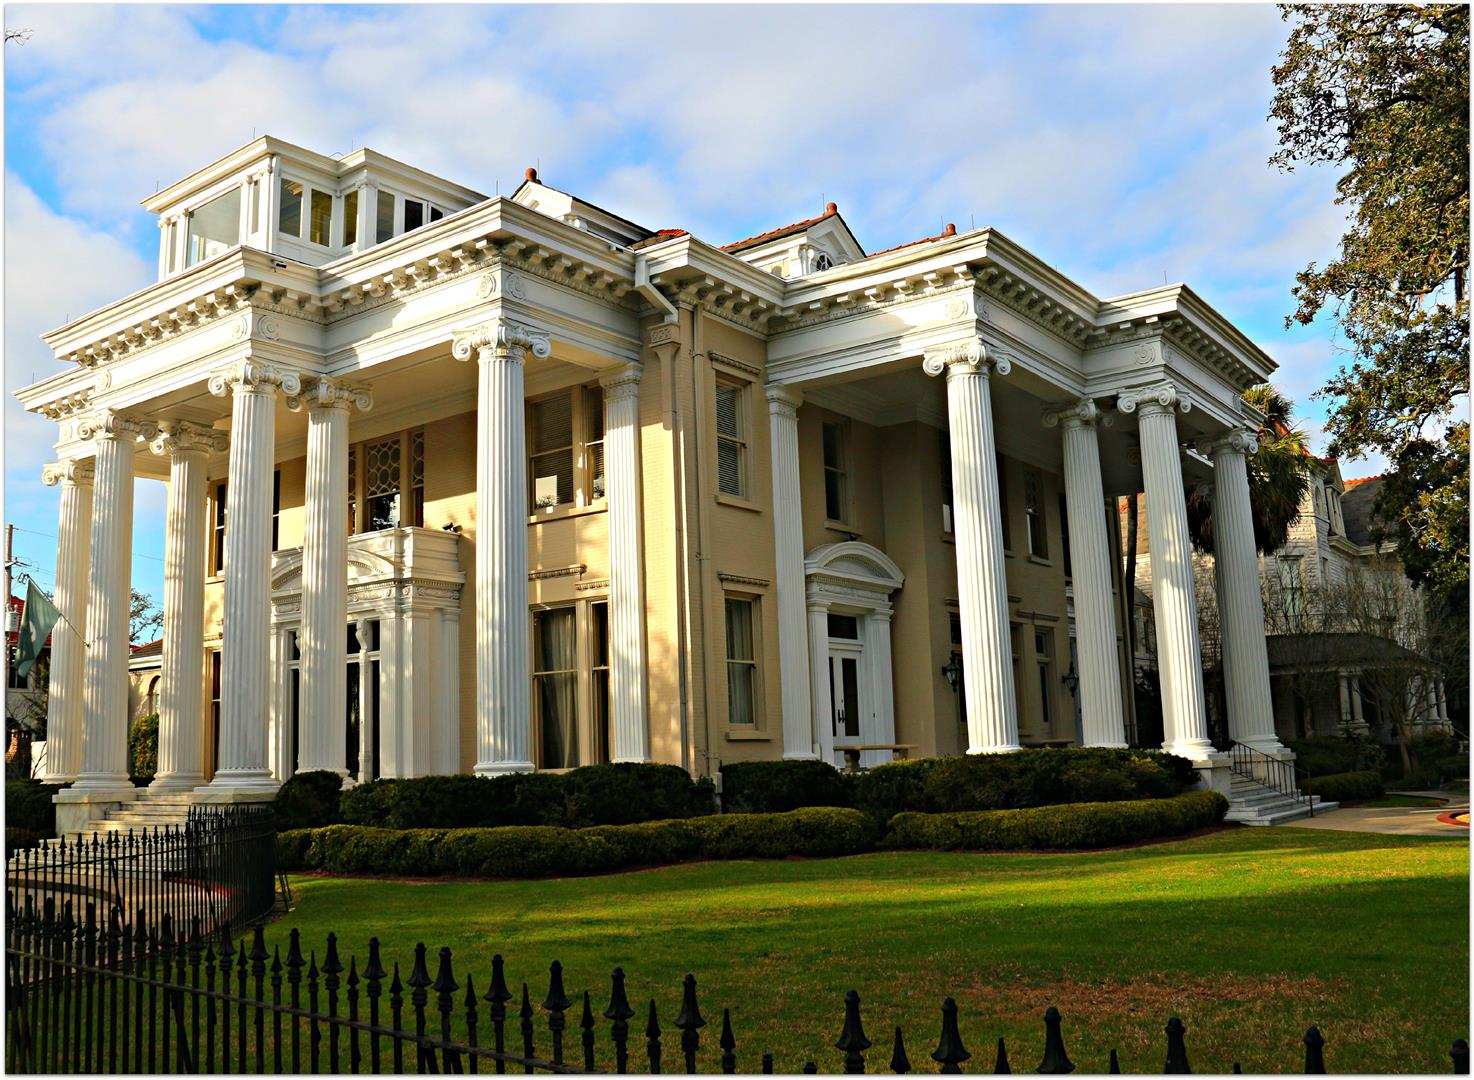 Image Result For Garden District Walk New Orleans